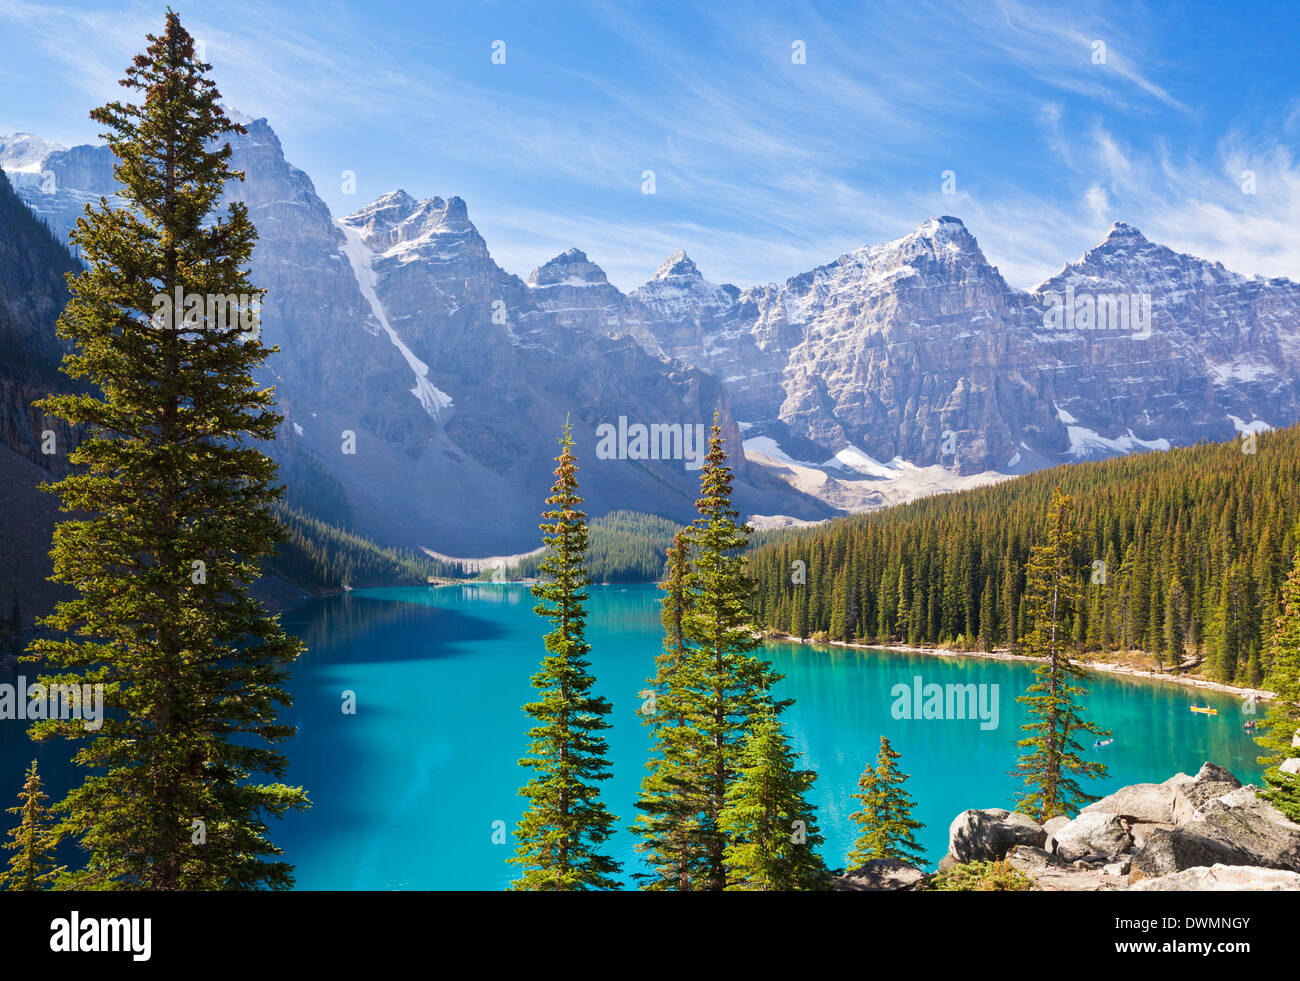 Moraine Lake in the Valley of the Ten Peaks, Banff National Park, UNESCO World Heritage Site, Alberta, Canadian Rockies, Canada - Stock Image